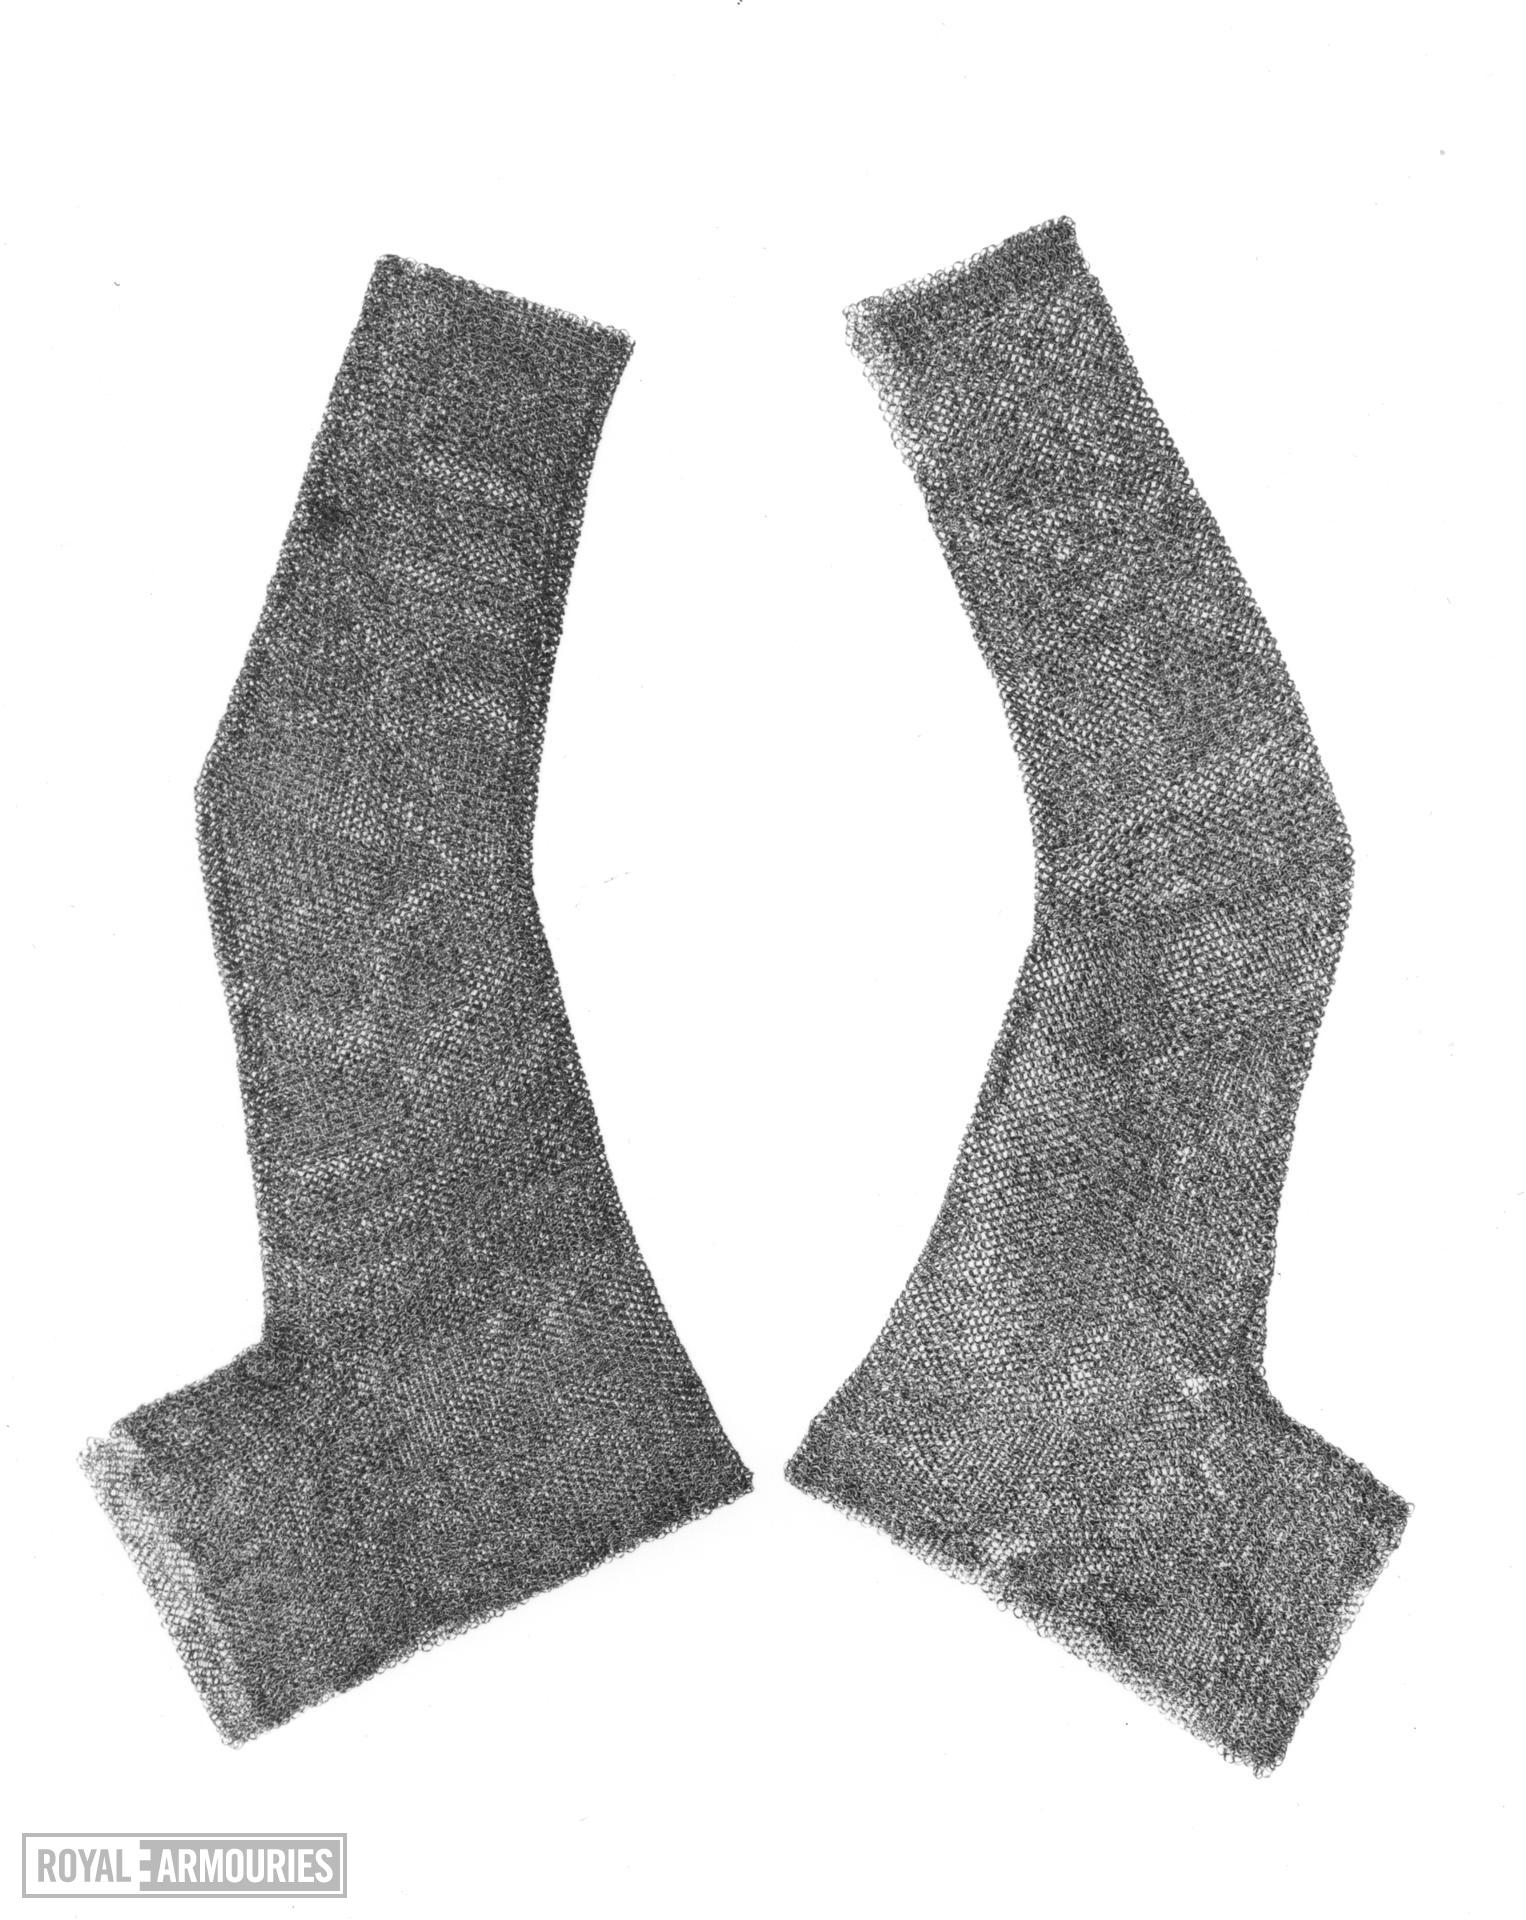 Mail sleeve Pair to III.1428.  Mounted with II.358.